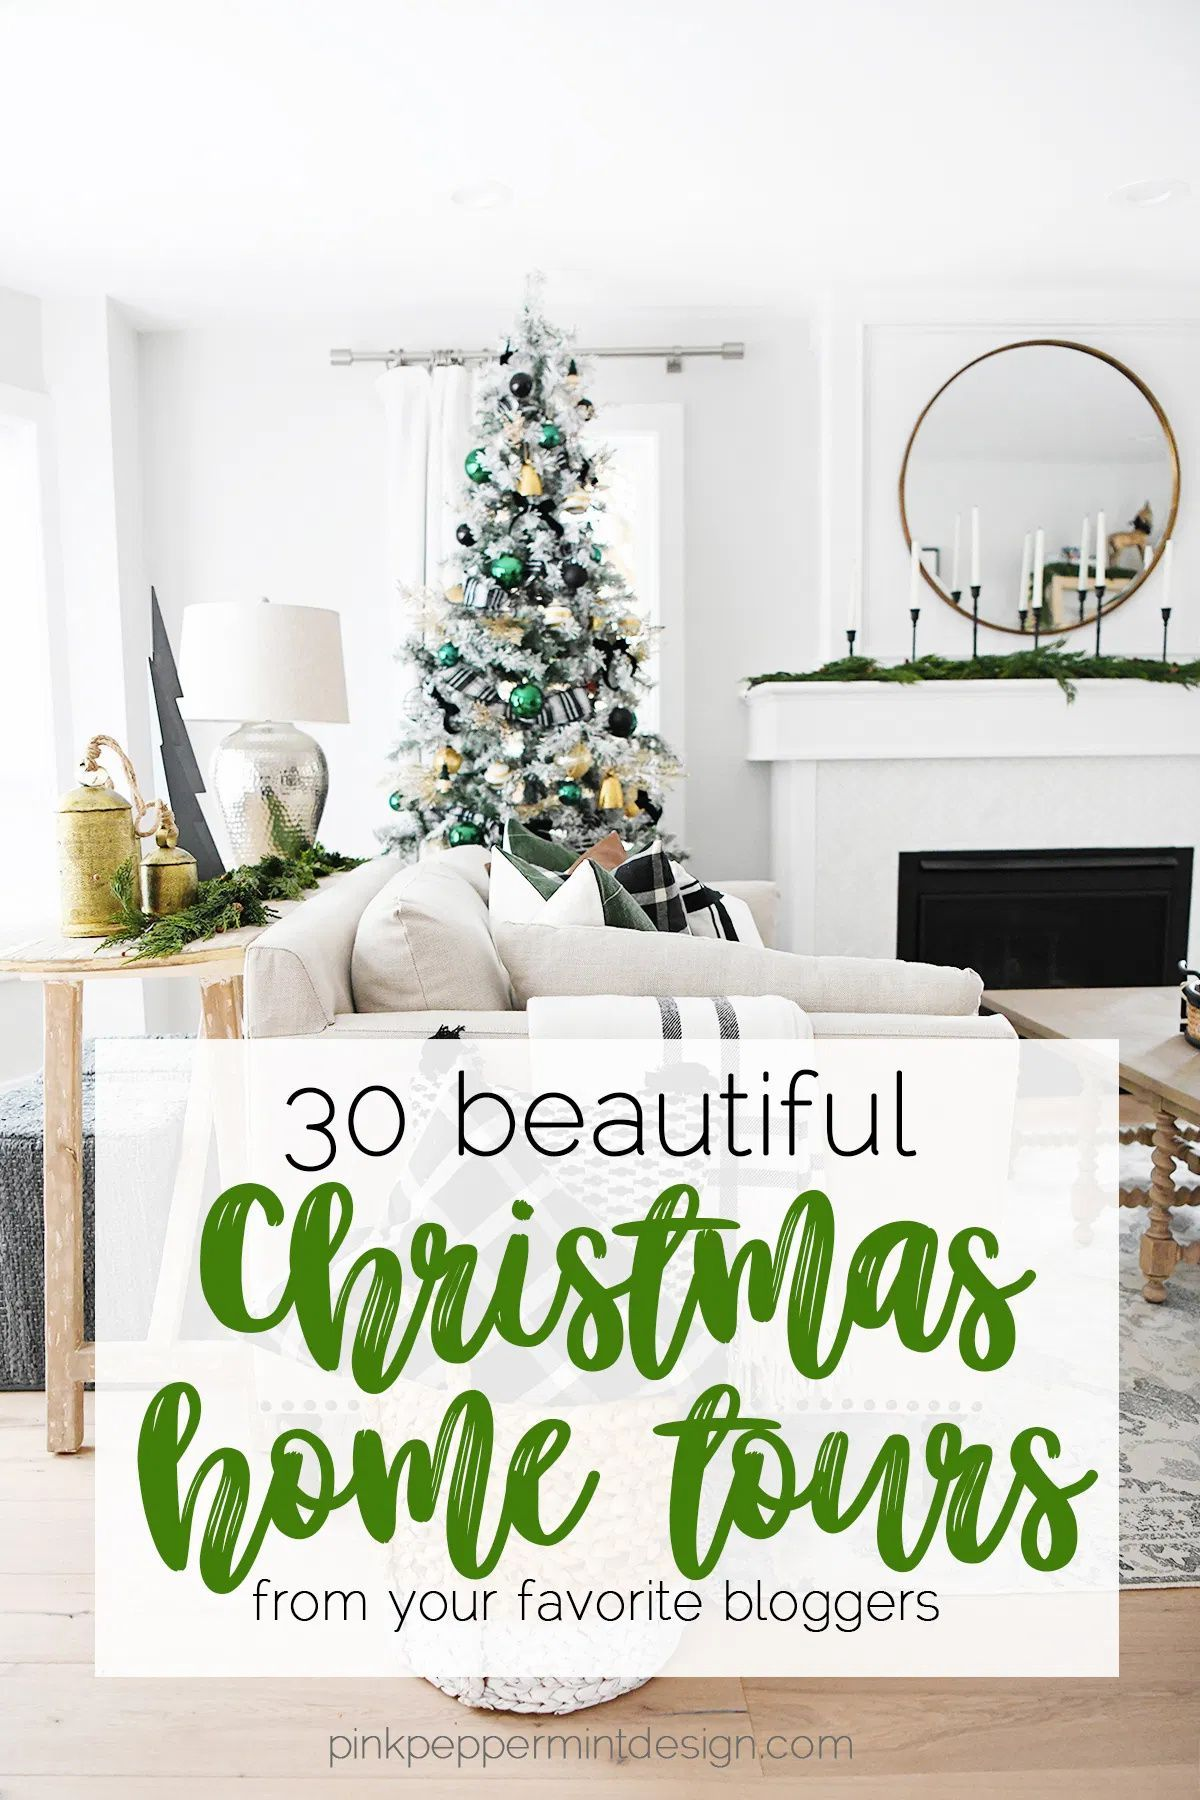 Beautiful Christmas home decor tours from 30 of your favorite bloggers. #Christmas #ChristmasDecor #HomeDecor #Design #ChristmasTree #PinkPeppermintDesign